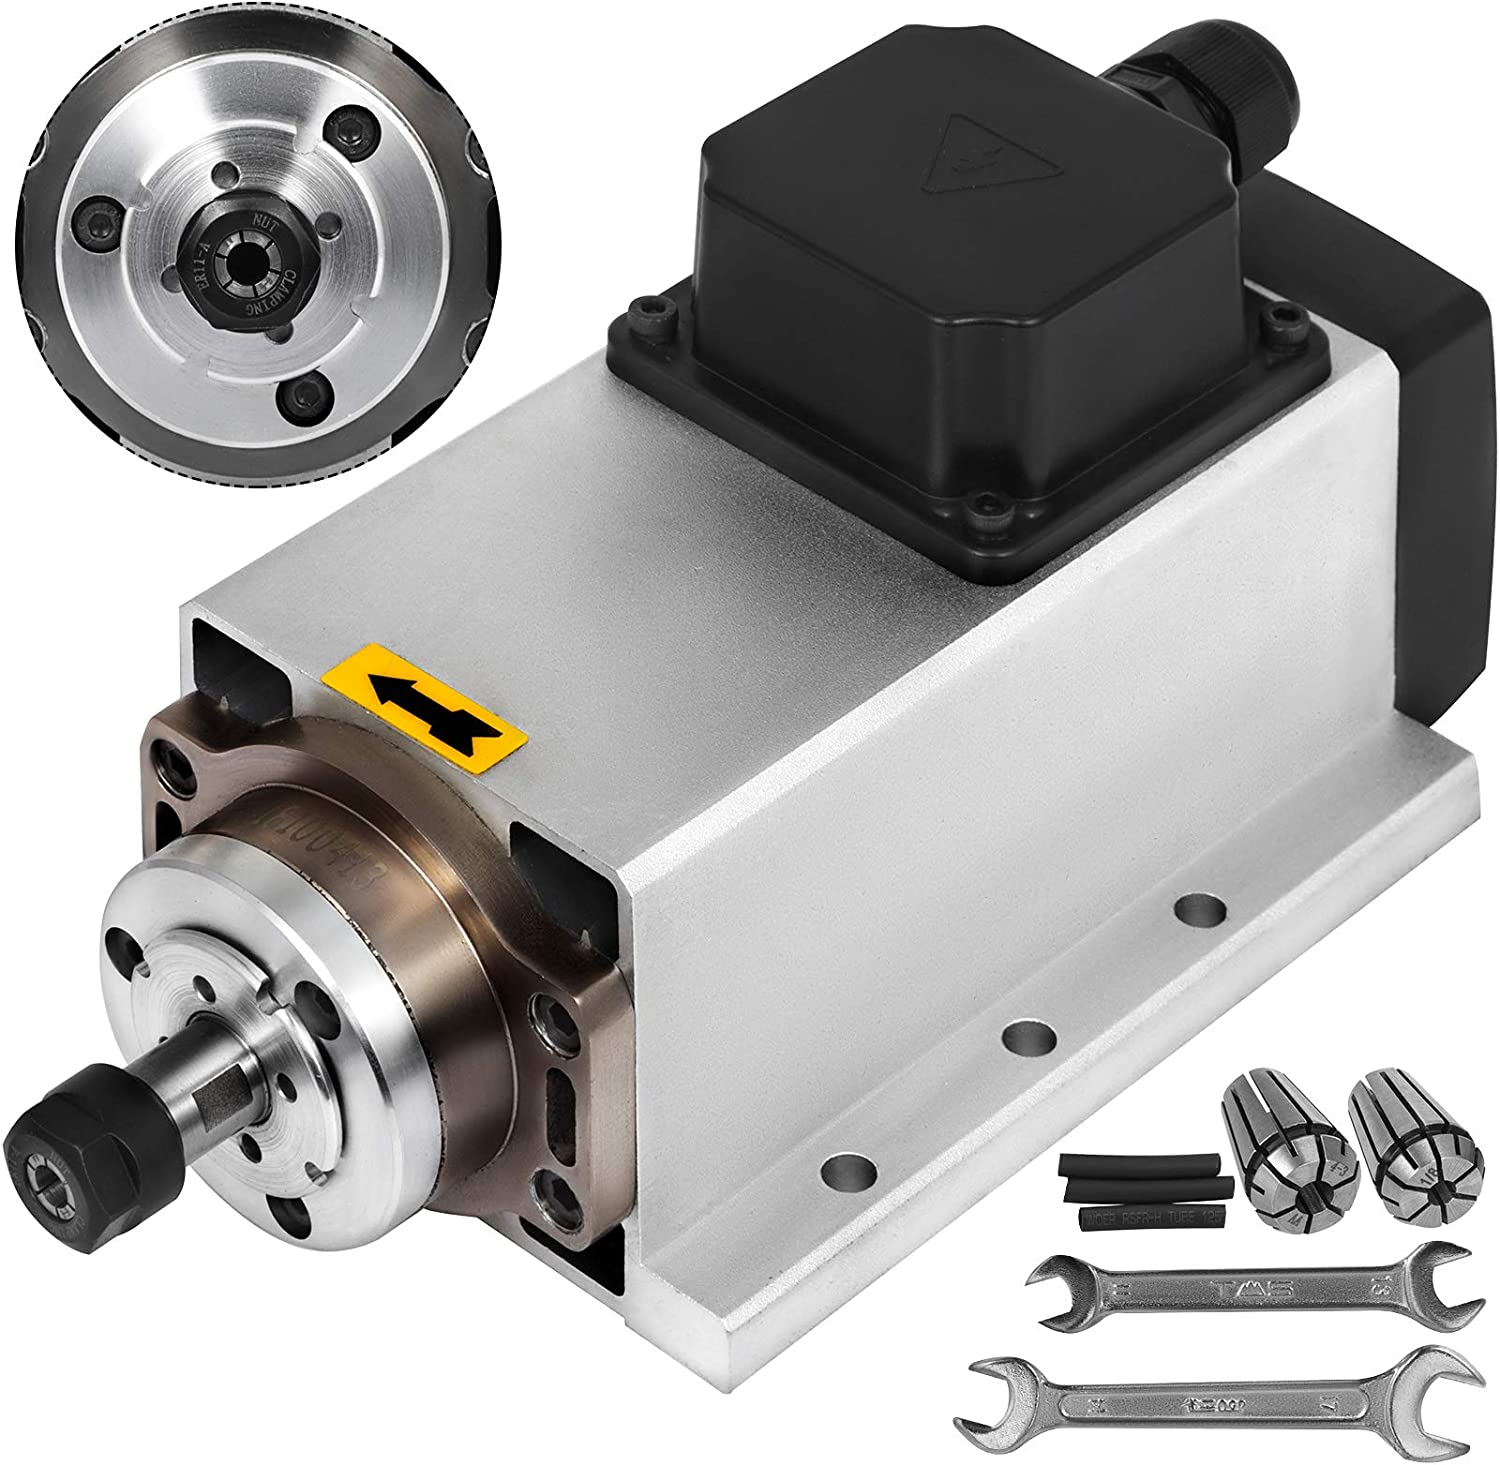 TOP QUALITY 1.5KW ER11  AIR-COOLE SPINDLE MOTOR AND MATCHING INVERTER FOR CNC